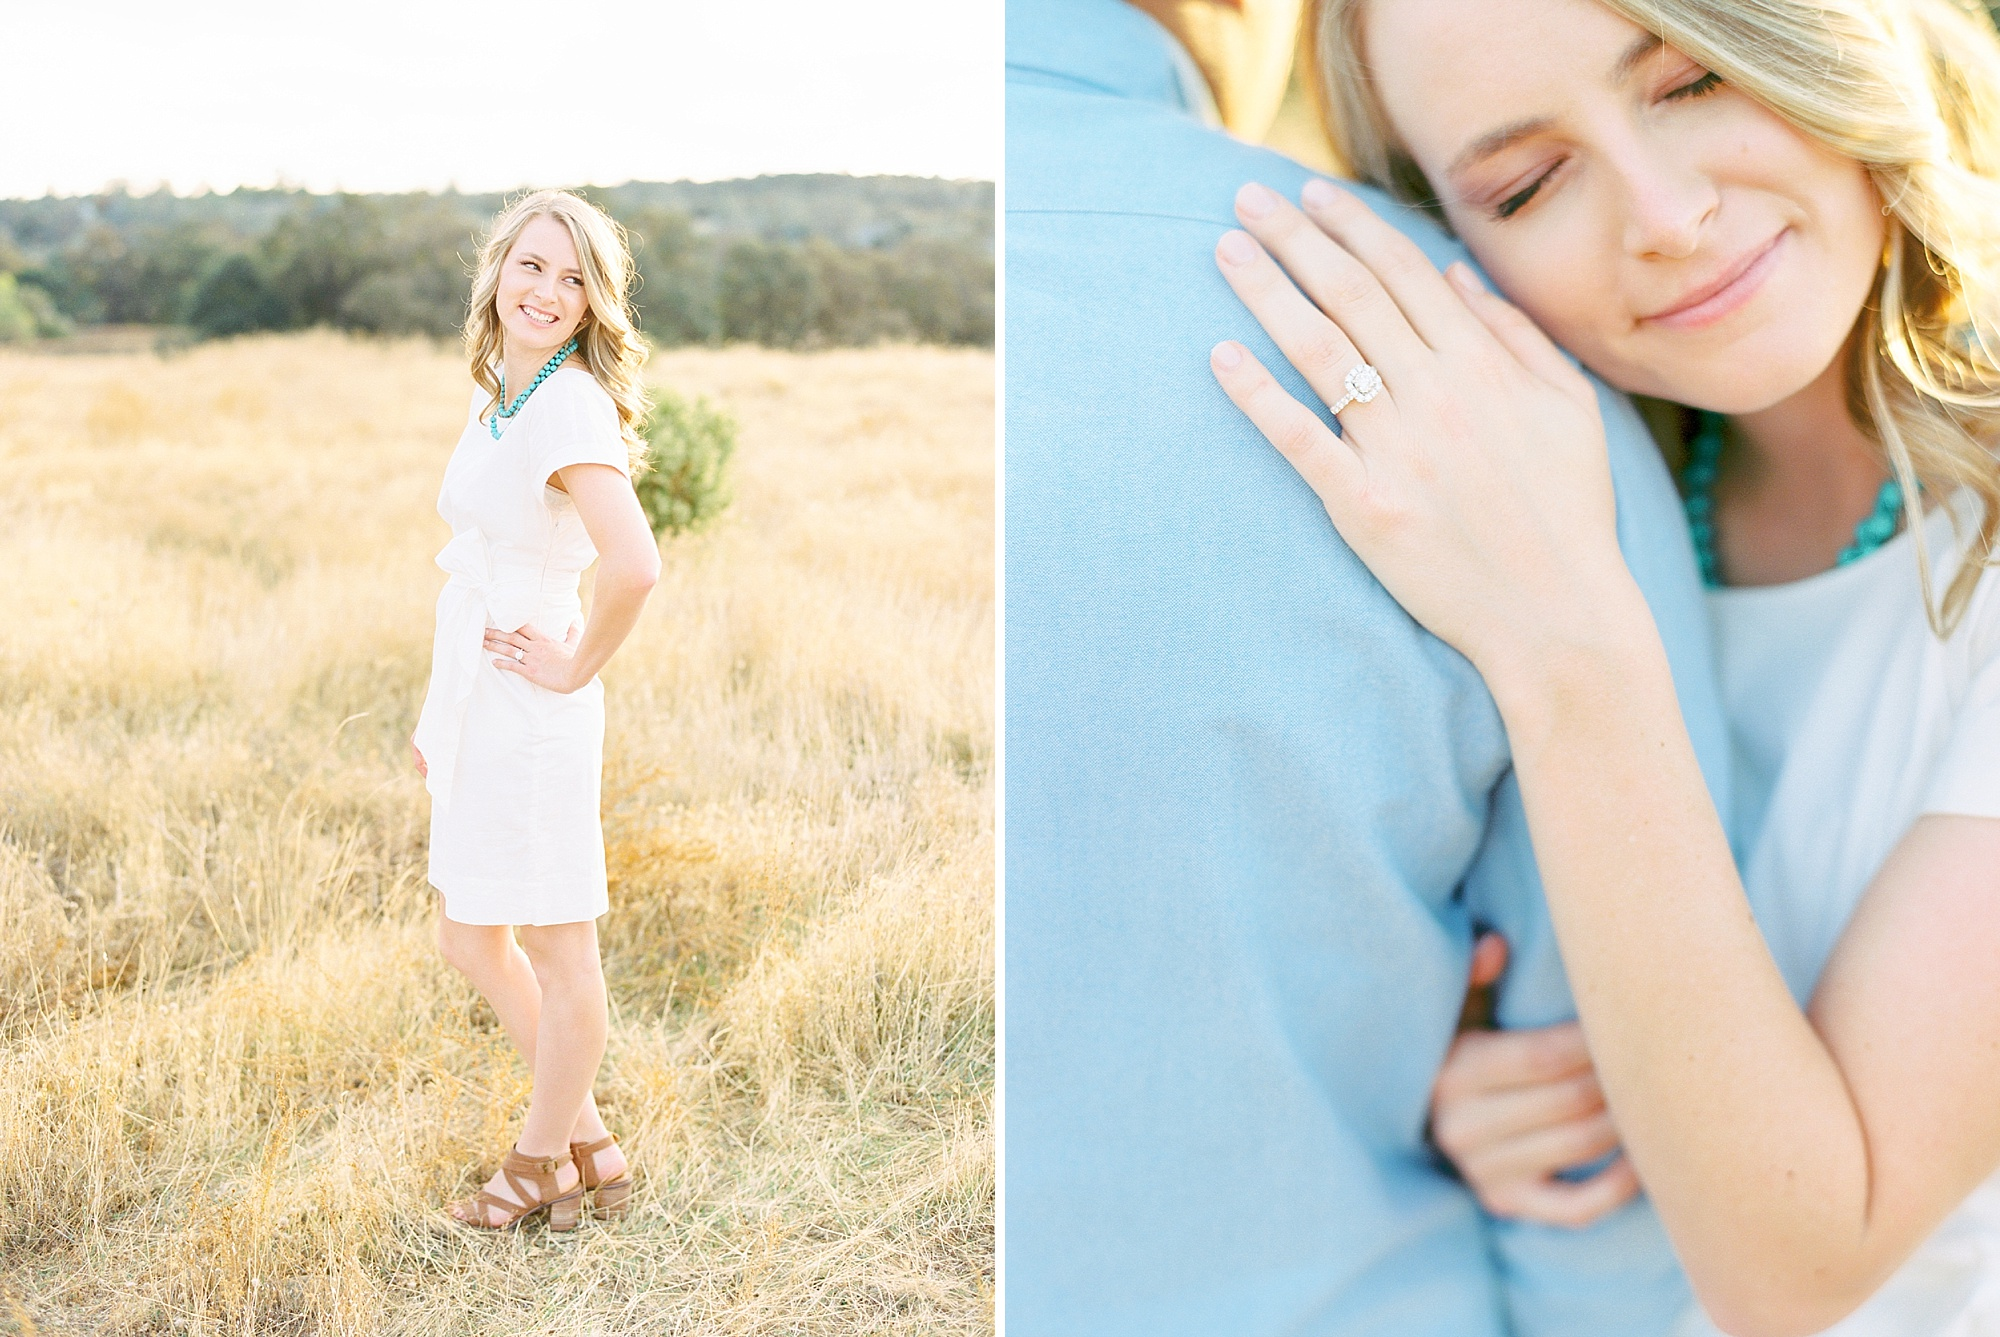 Golden Hills Engagement Session - Film Engagement Session - Ashley Baumgartner - Sacramento Wedding Photography - Stone Barn Ranch Wedding Couple_0008.jpg